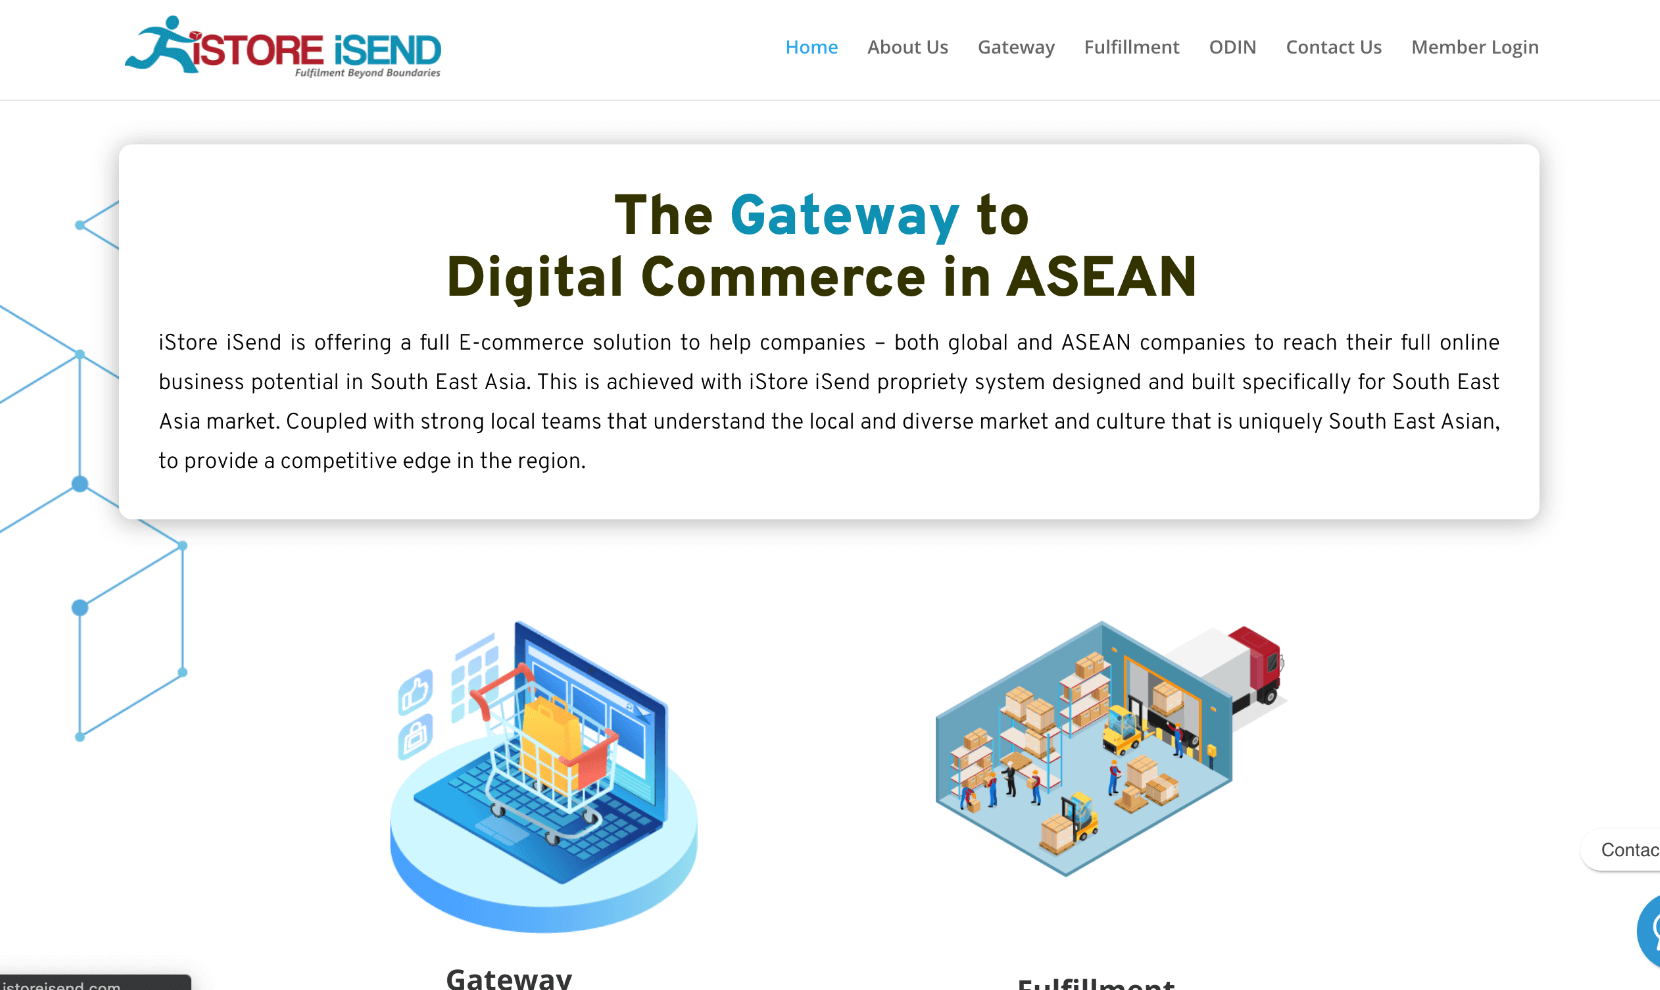 malaysian-logistics-startup-istore-isend-raises-5-5-million-to-expand-its-business-to-the-philippines